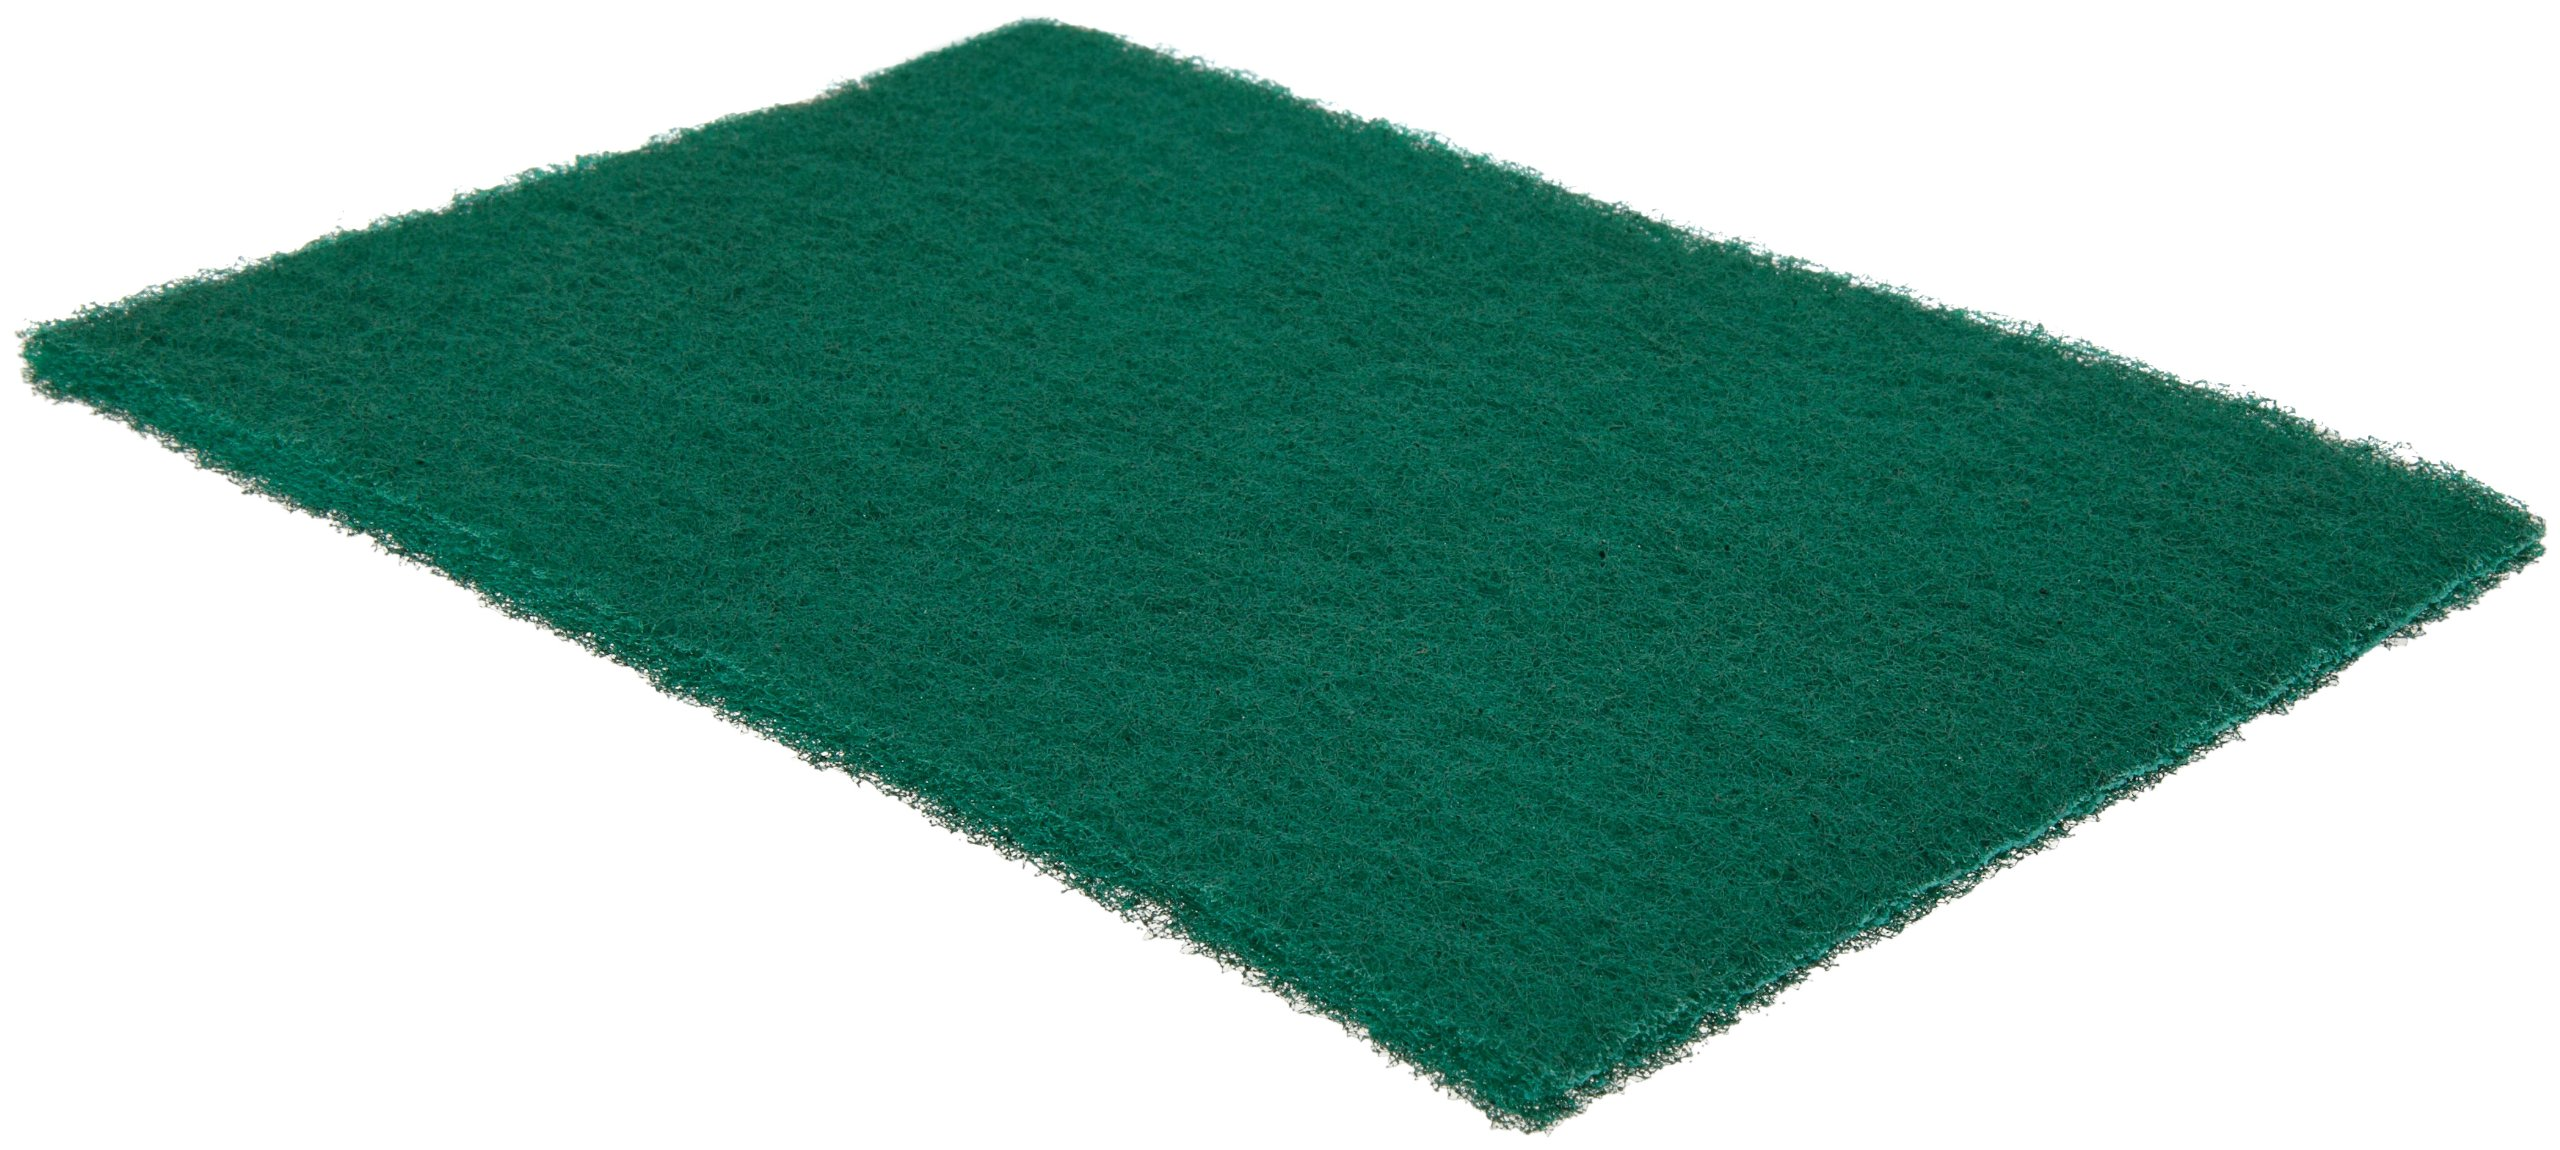 Norton Bear-Tex Scouring Non-Woven Abrasive Hand Pad, Good Performance, Green Color, Aluminum Oxide, Grit Very Fine (Pack of 60)